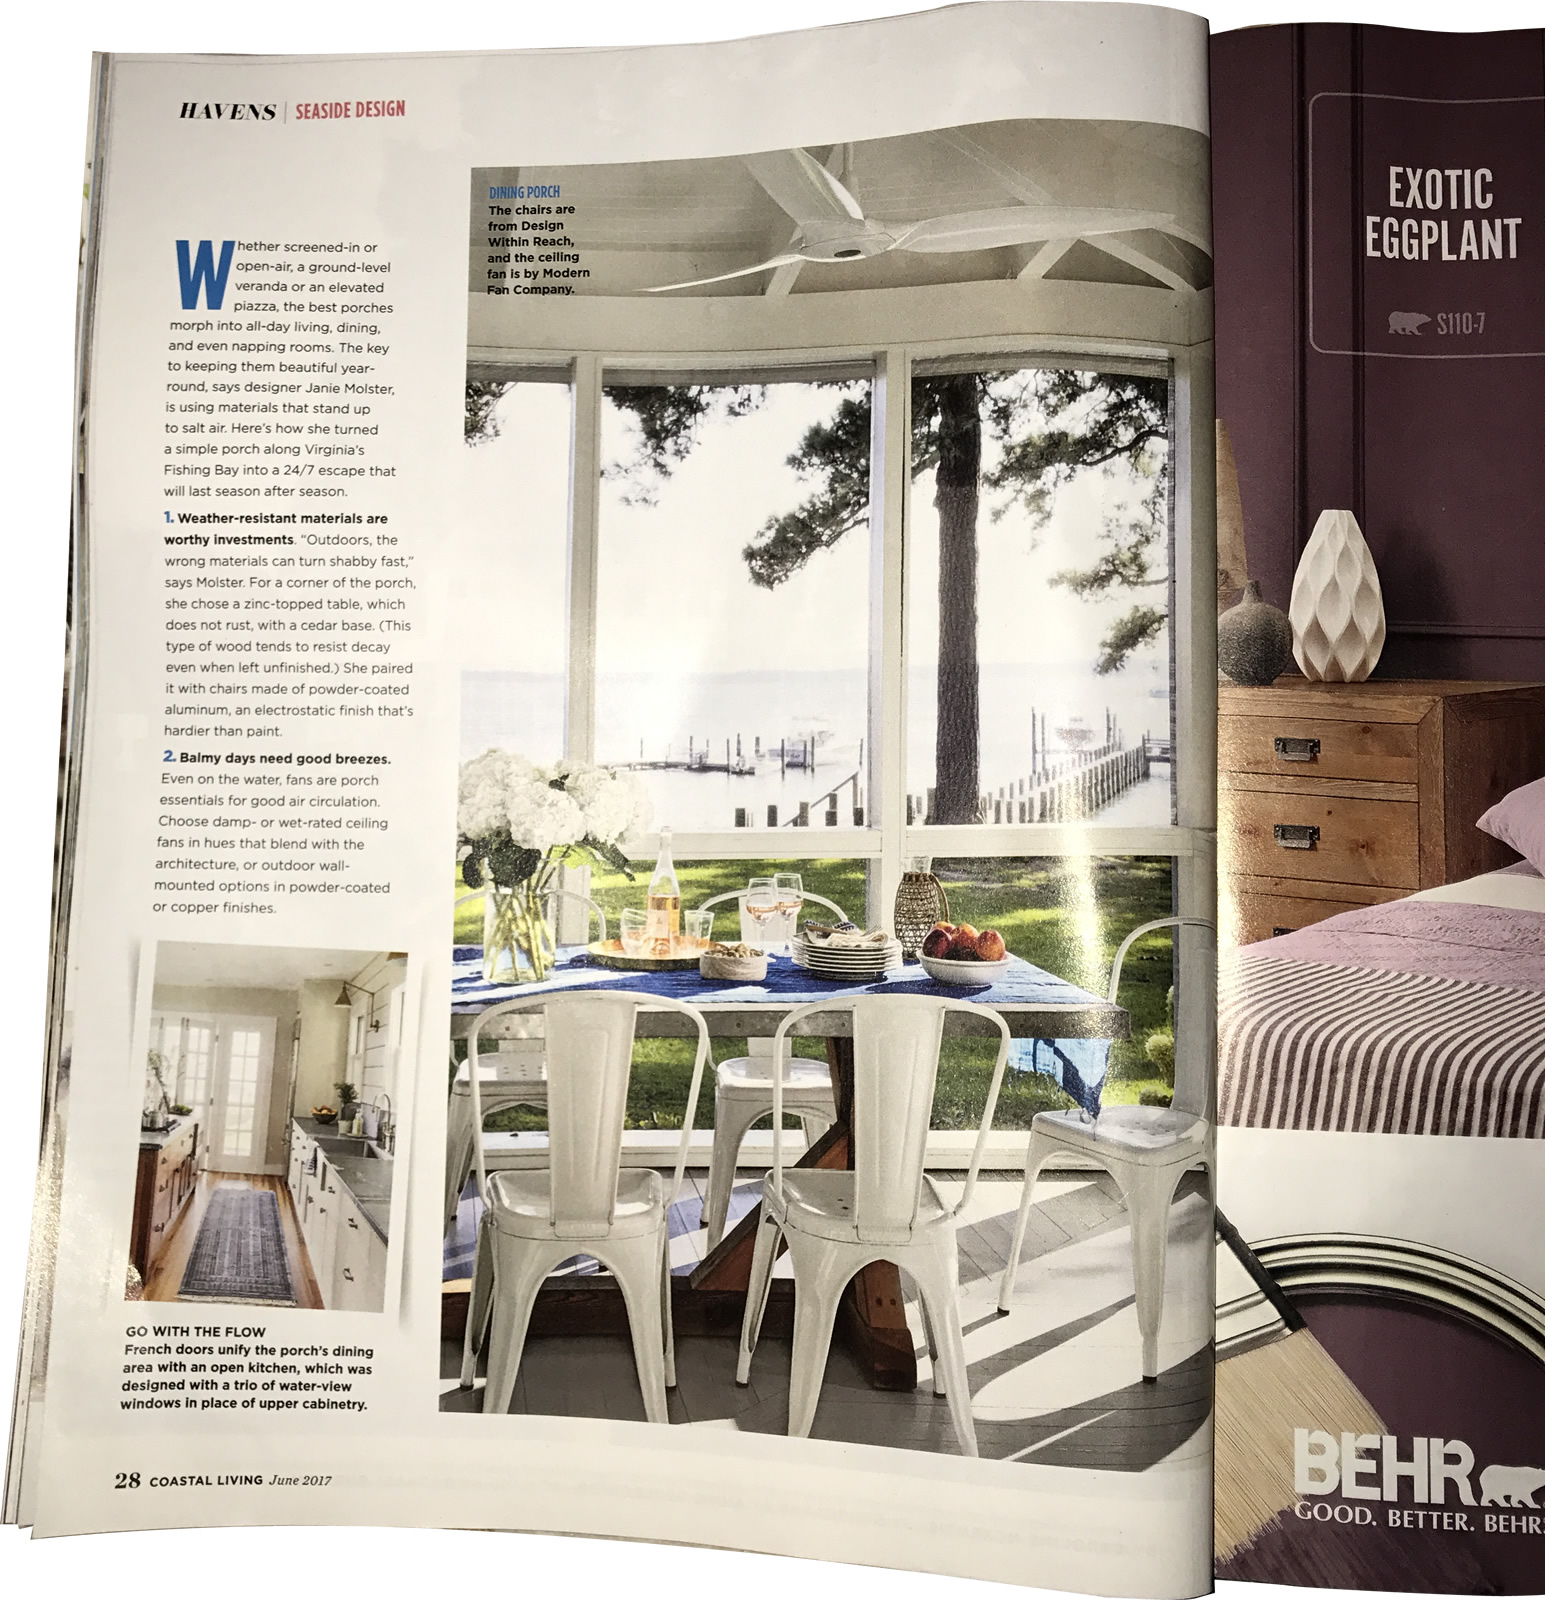 9c222e1a18e The article Havens l Seaside Design in Coastal Living s June 2017 issue  shares designer Janie Molster s